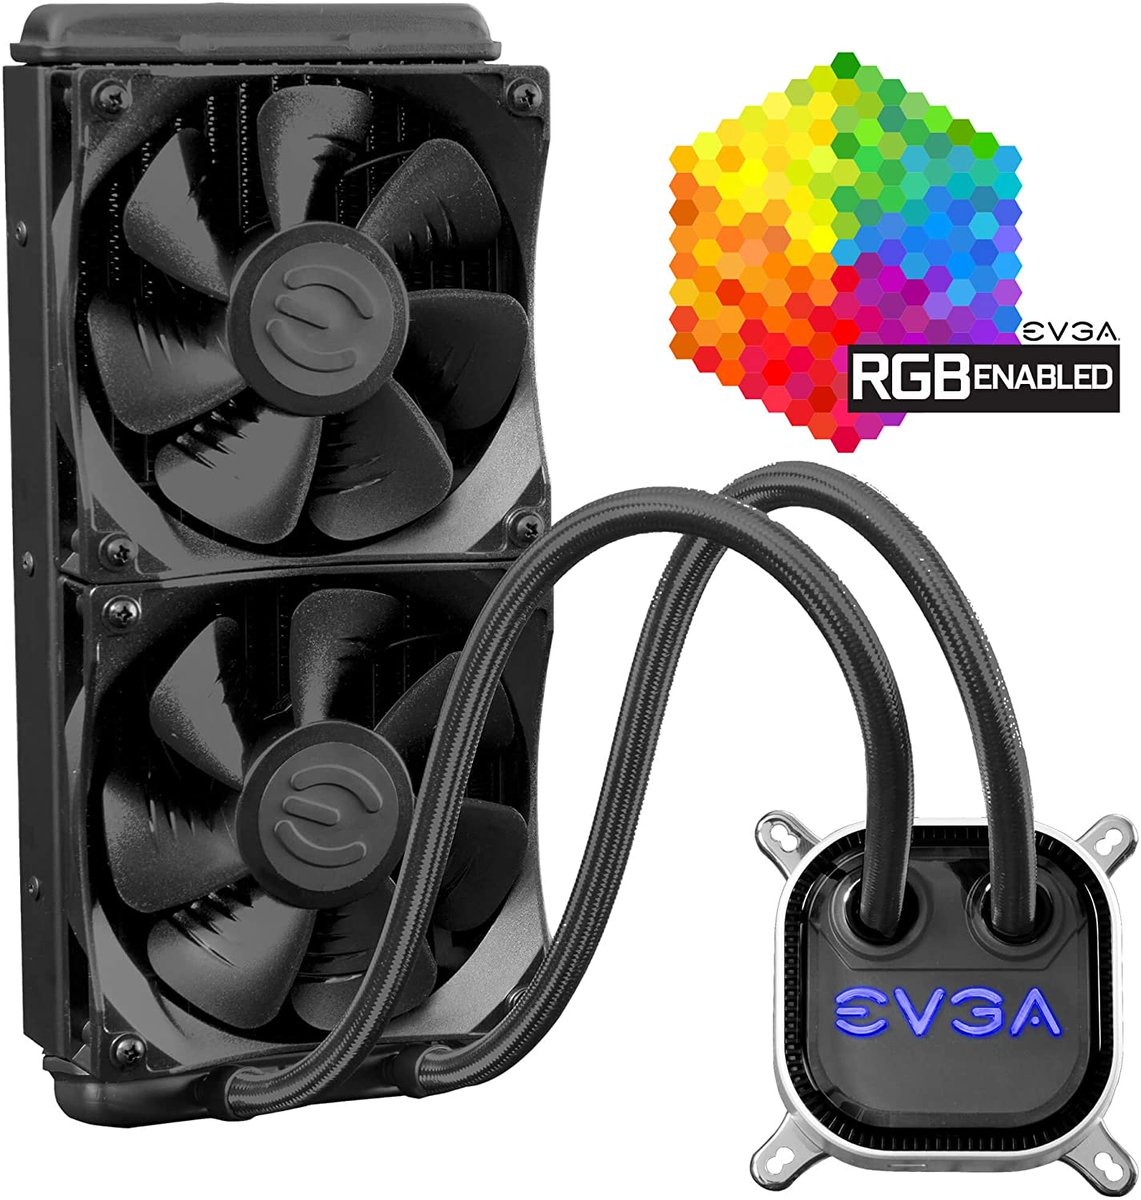 EVGA CLC 240mm All-In-One RGB LED CPU Liquid Cooler  Only $79.99!  2